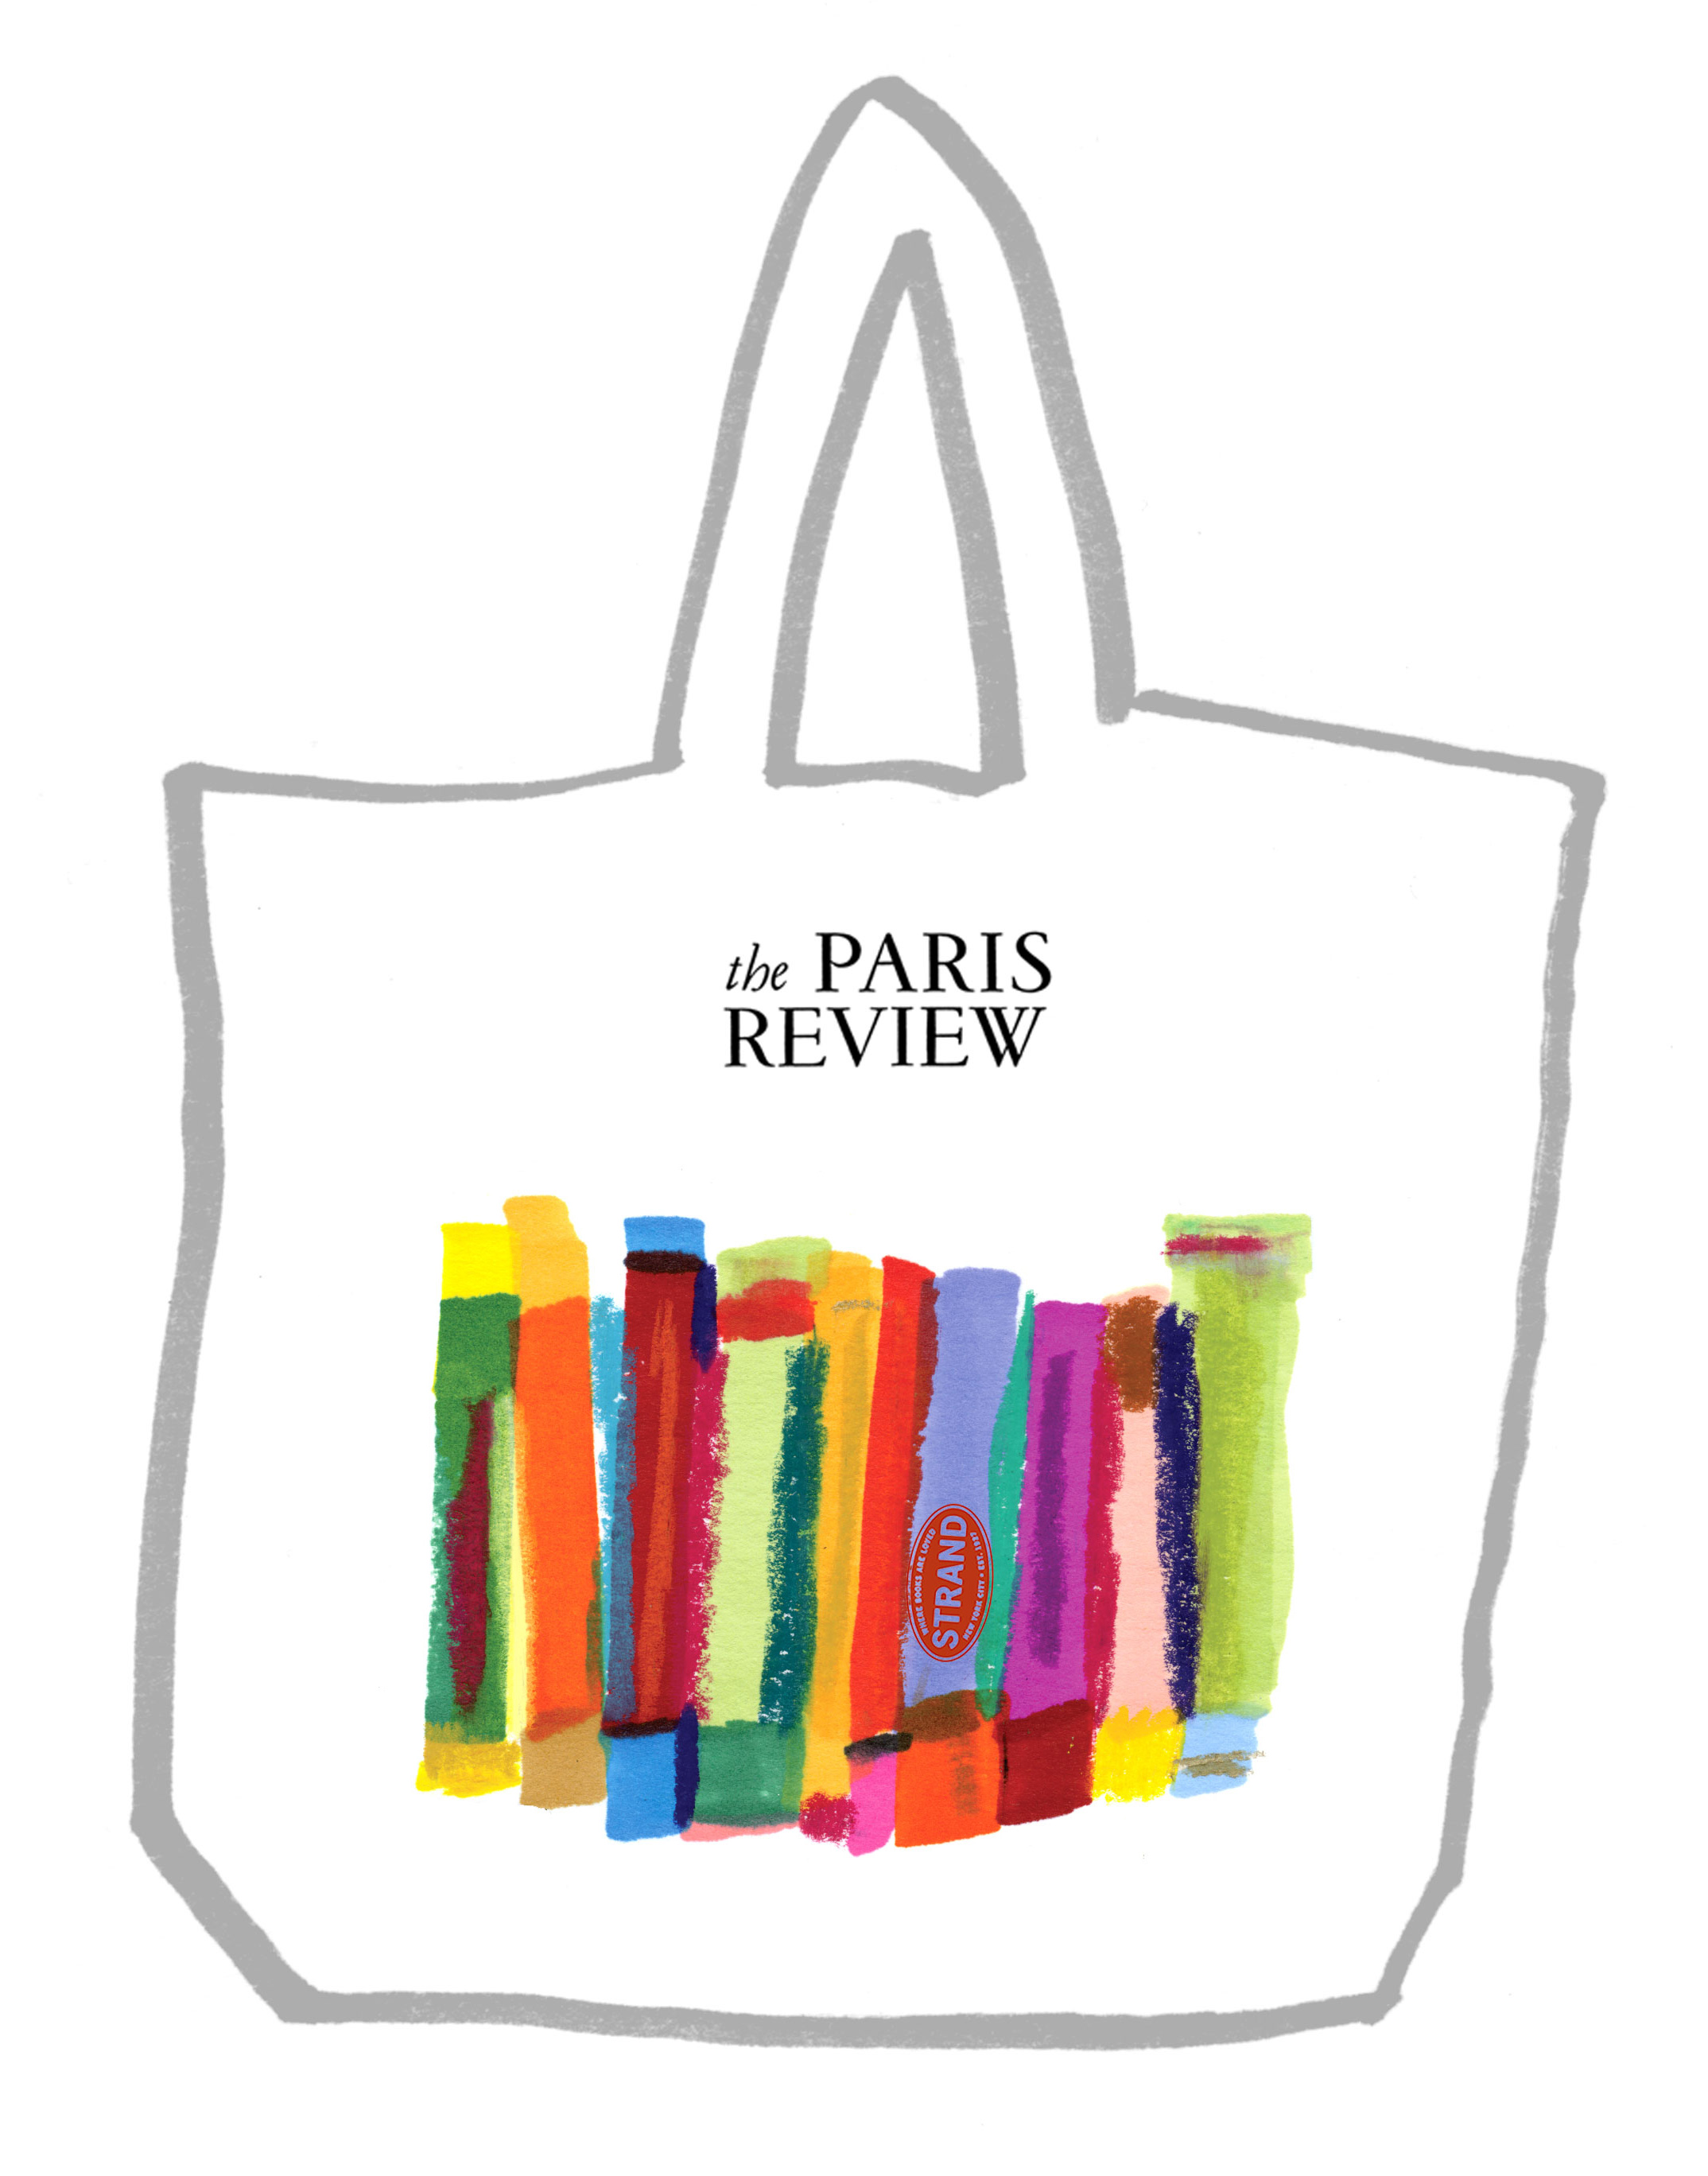 Joanna Neborsky Paris Review Tote Bag Contest Submission